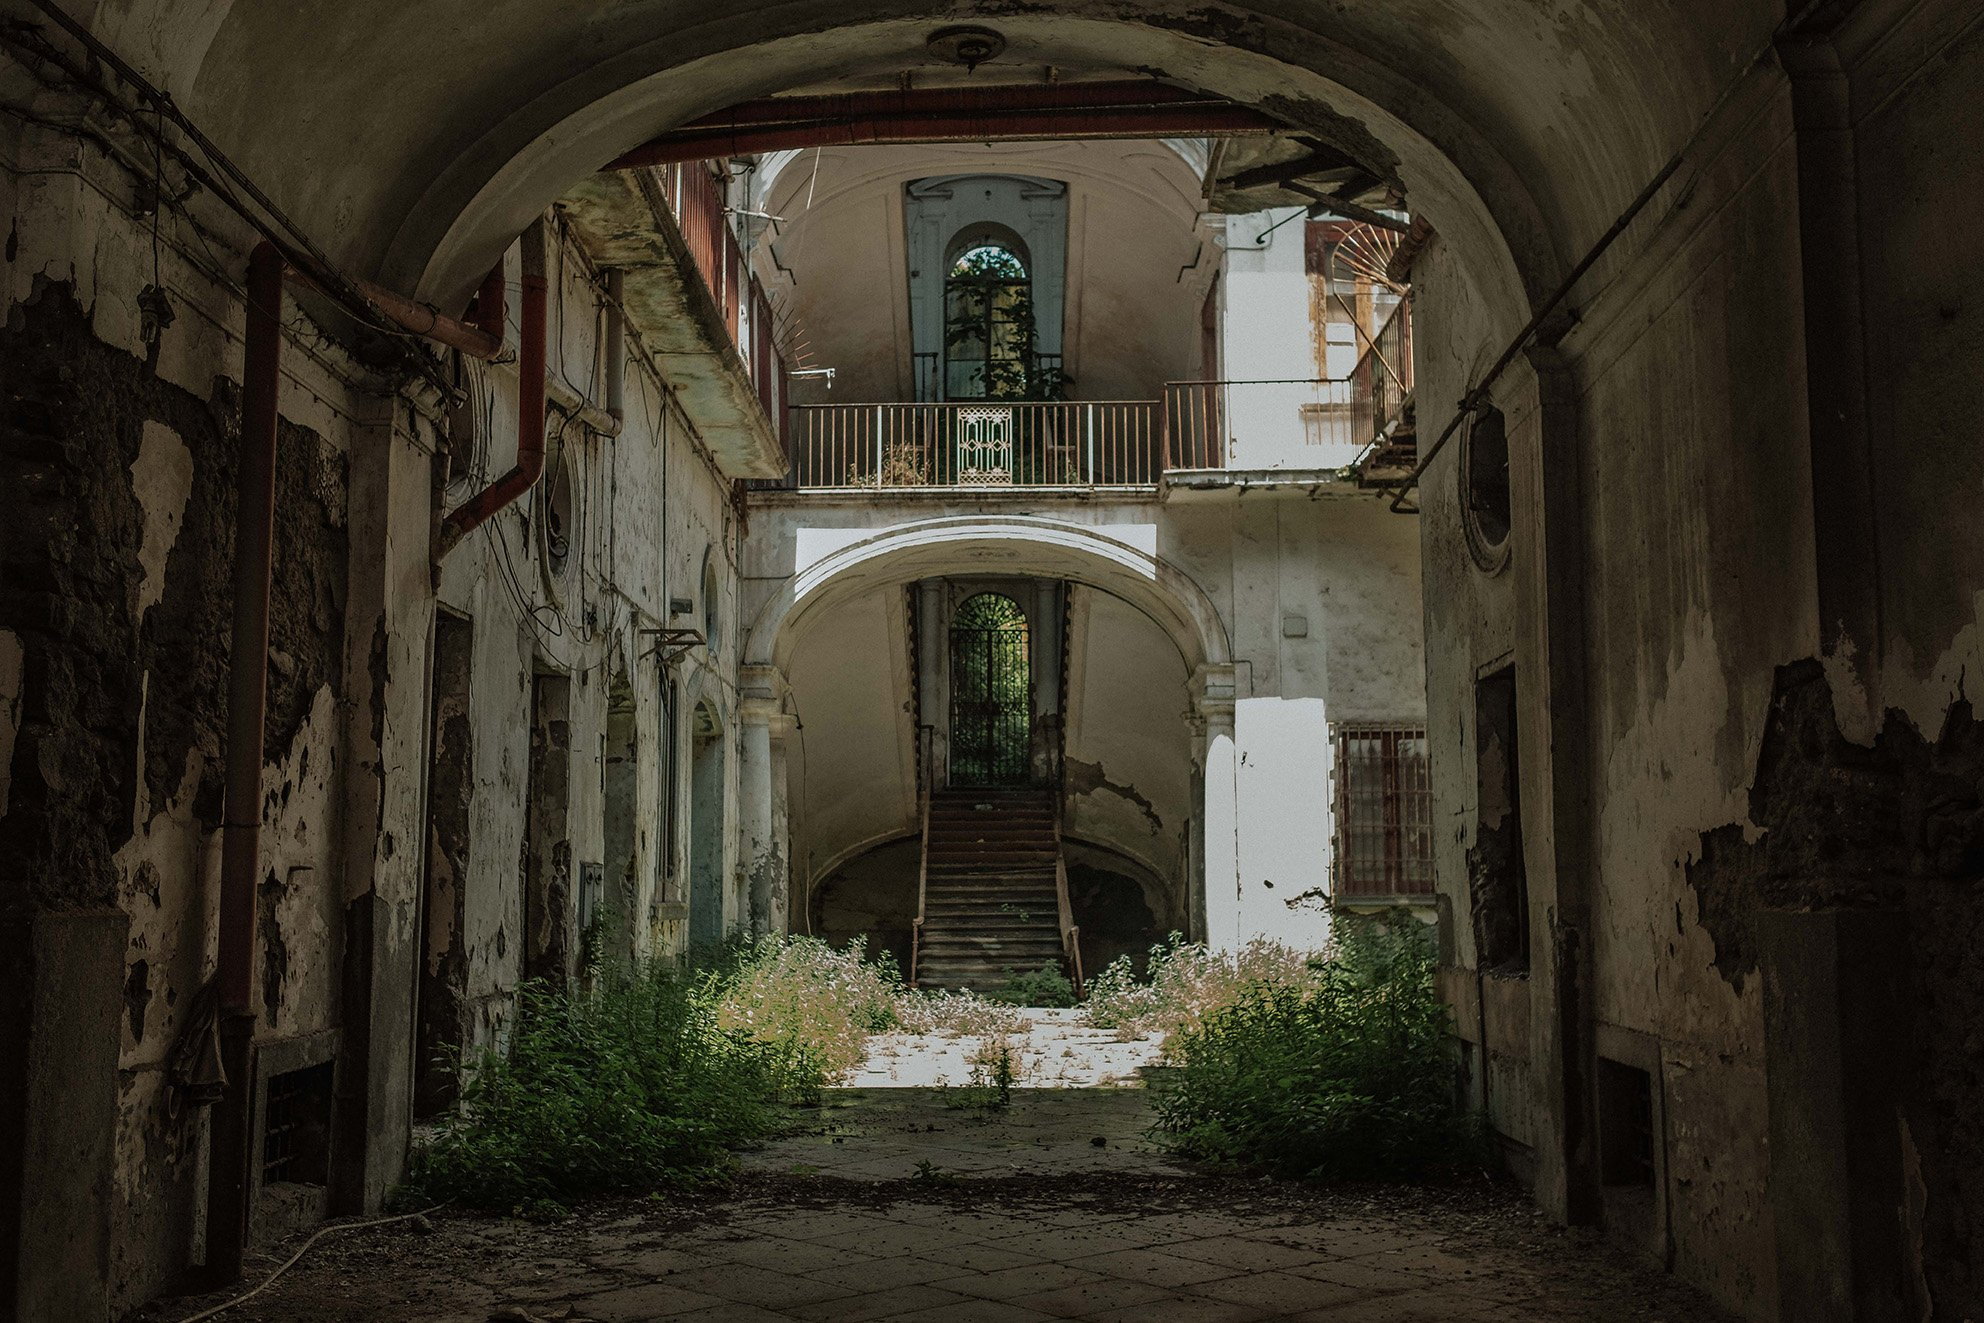 elisabetta riccio - abandoned building in the historic center of boscotrecase, naples